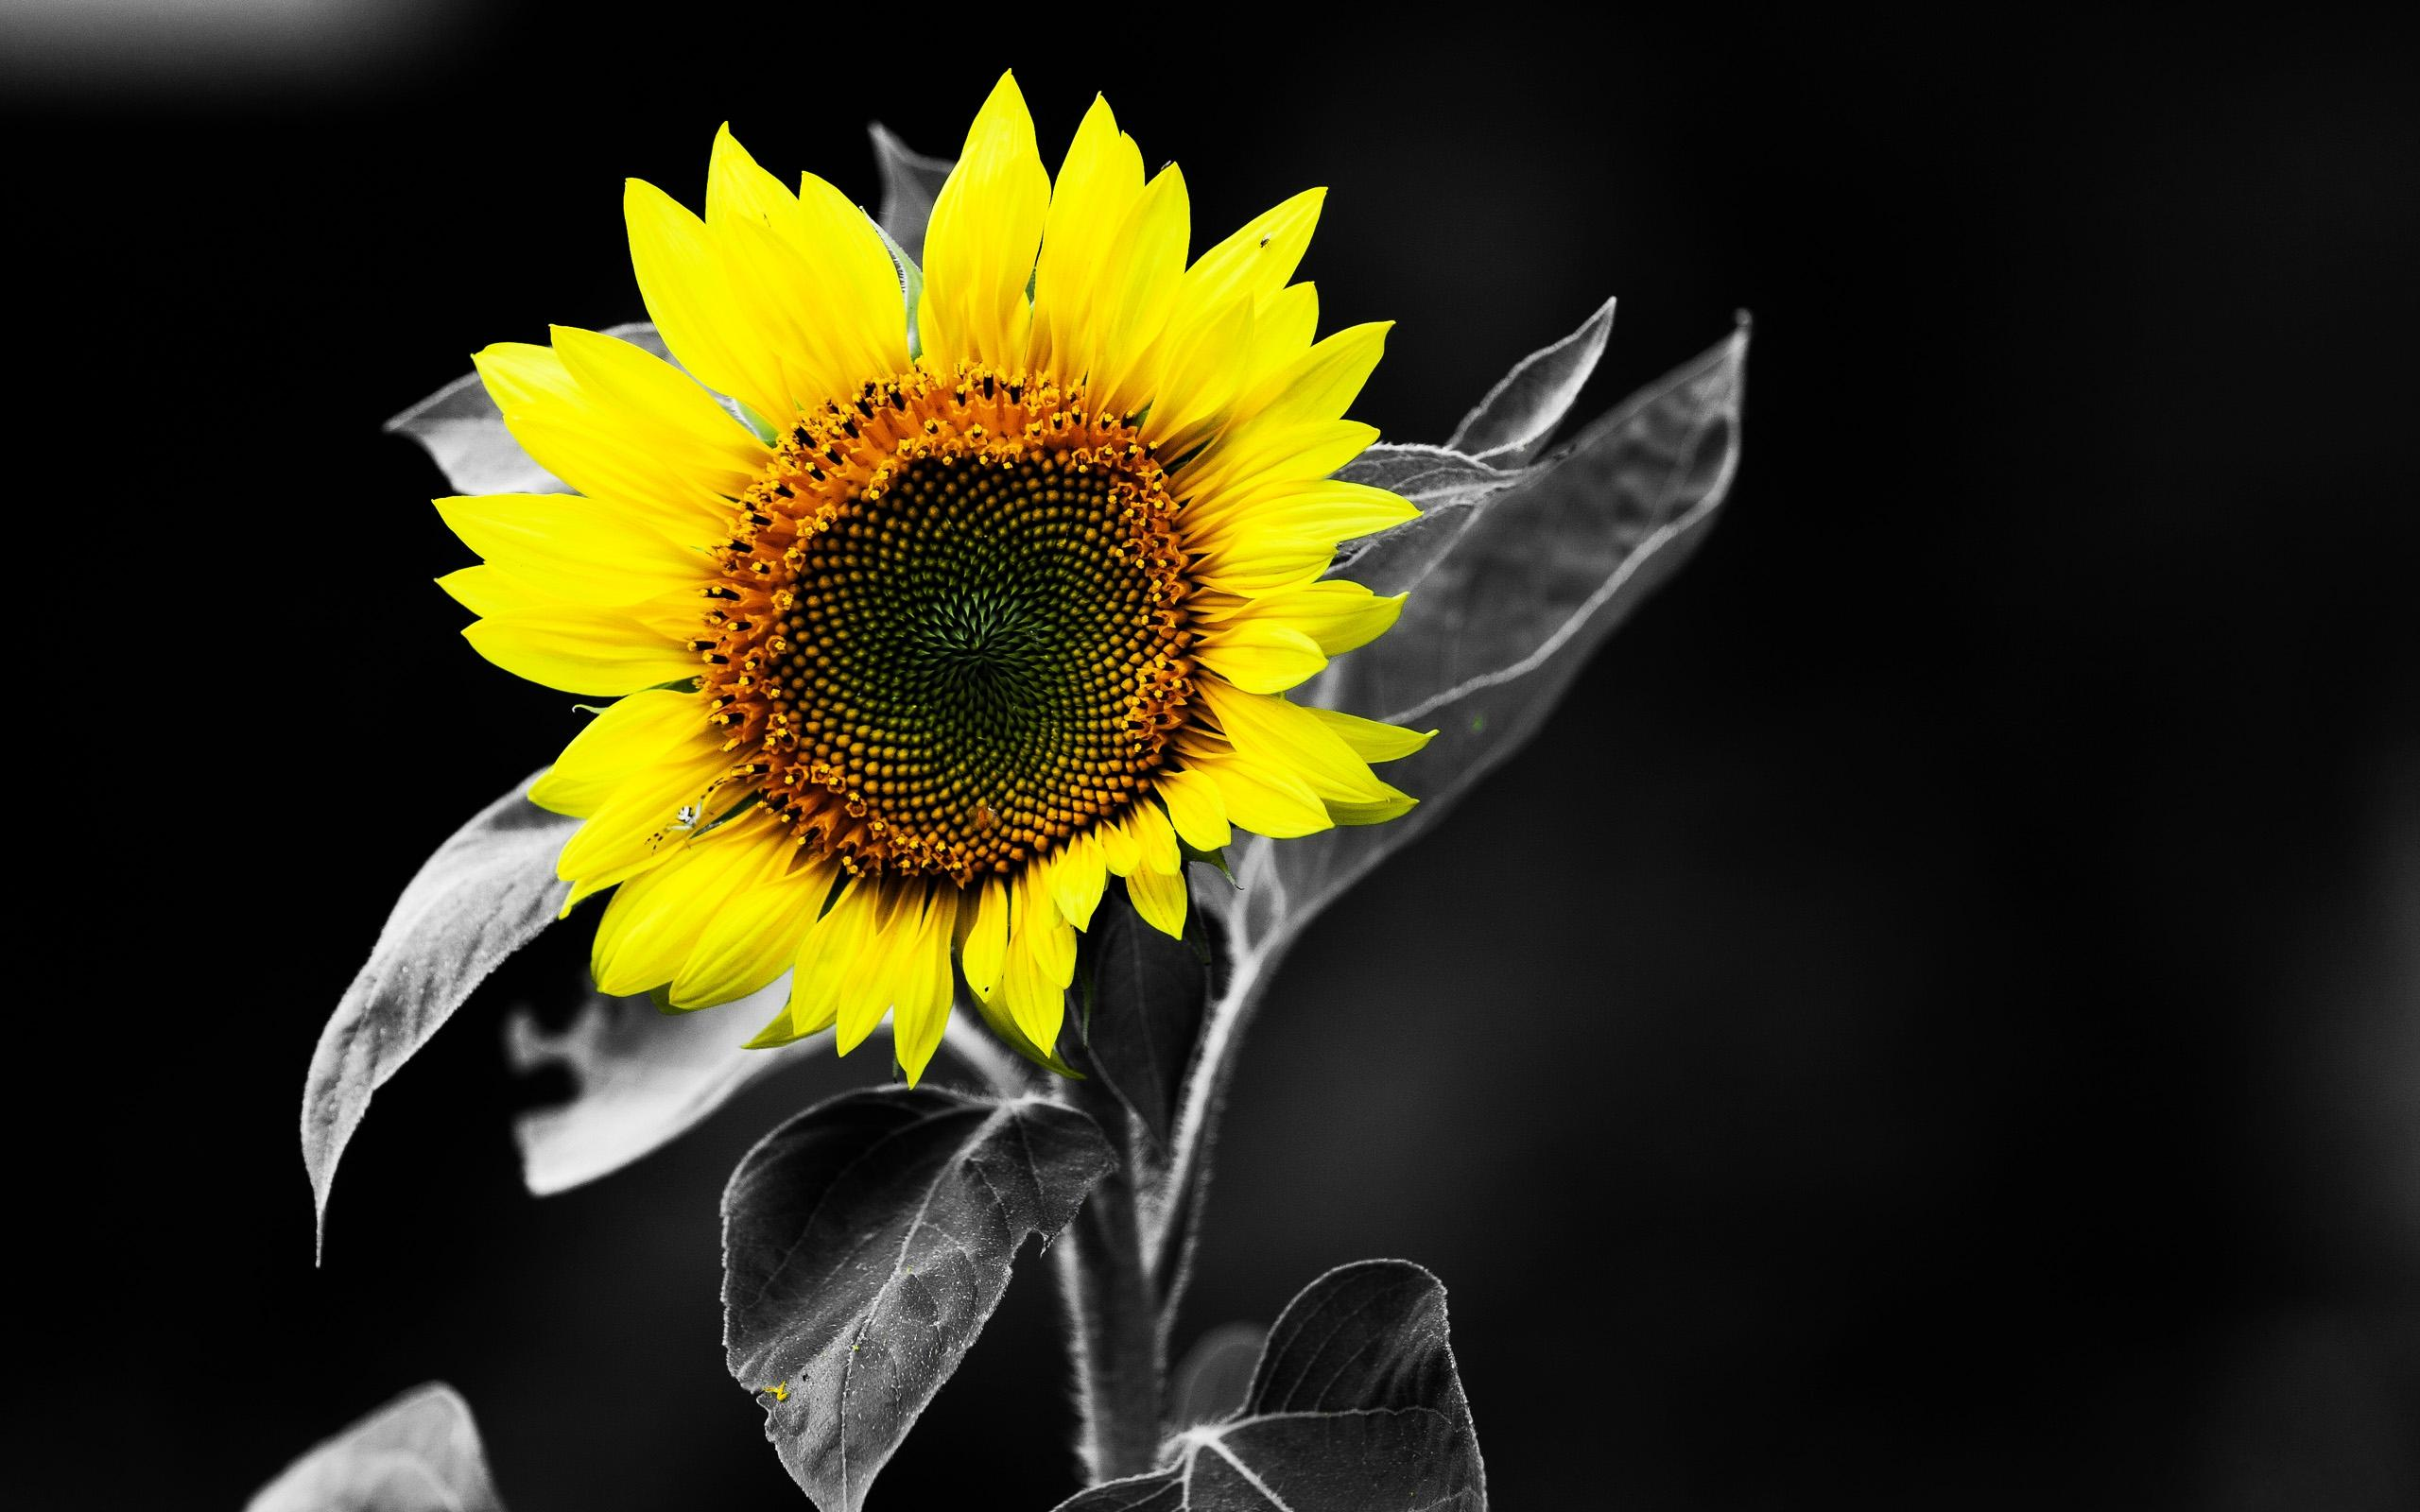 Sunflower free wallpapers